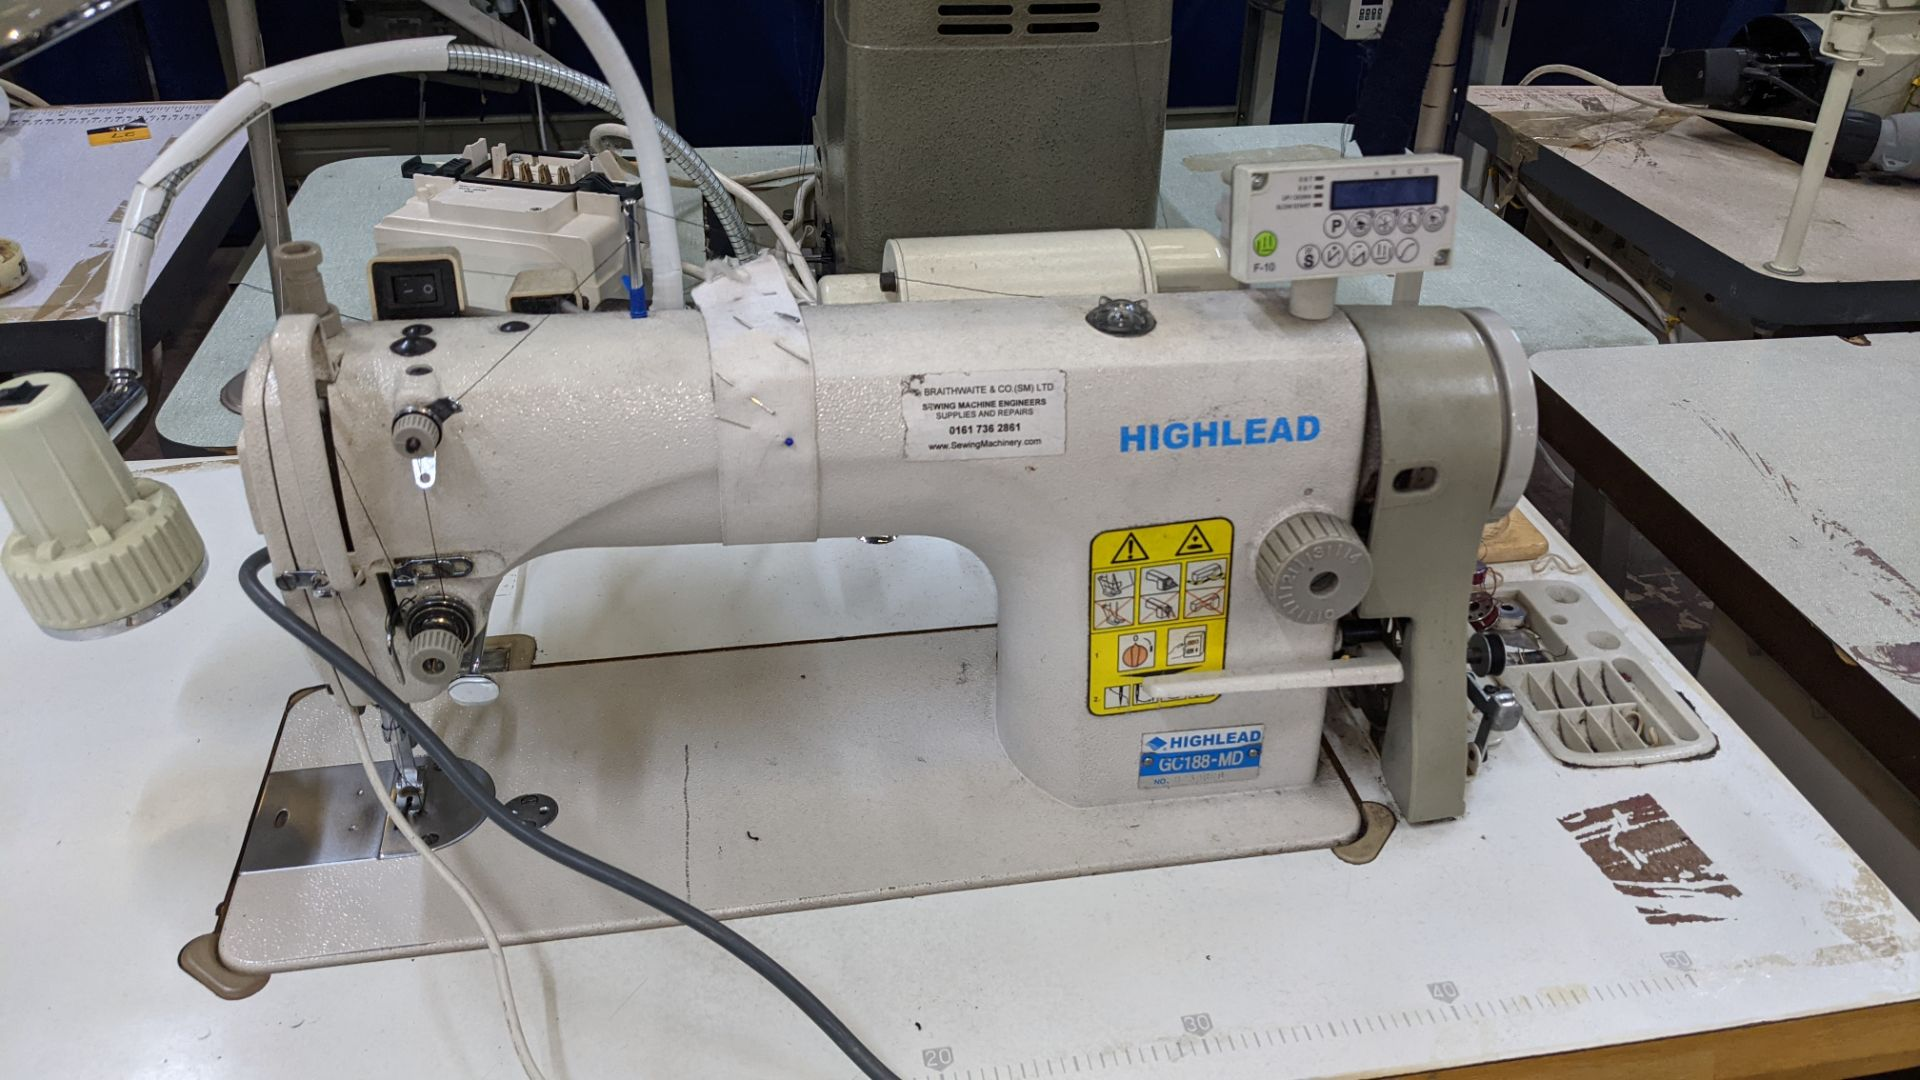 Highlead flat sewer model GC188-MD - Image 6 of 17